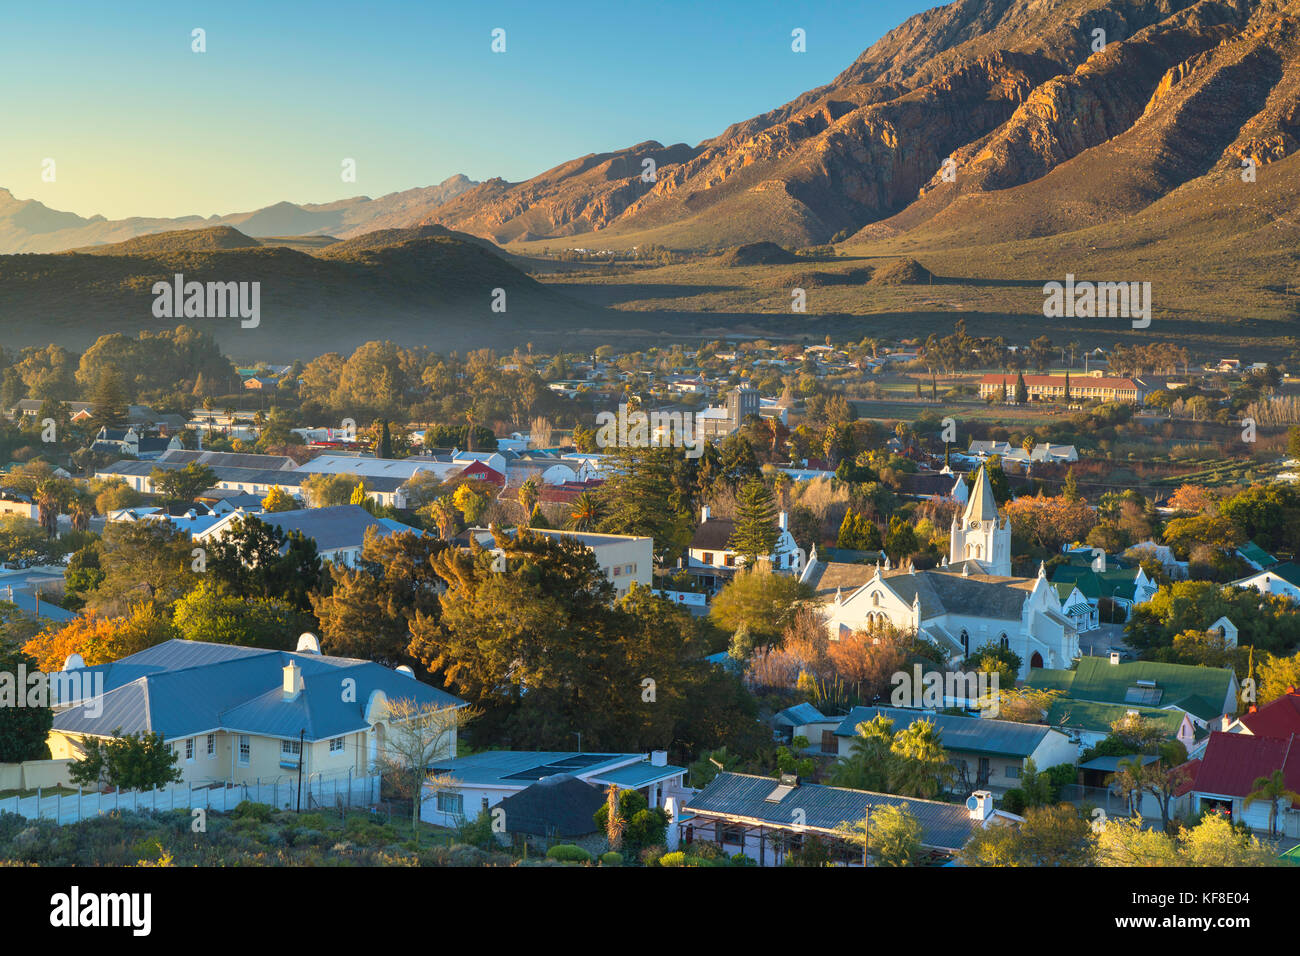 View of Montagu at dawn, Western Cape, South Africa - Stock Image